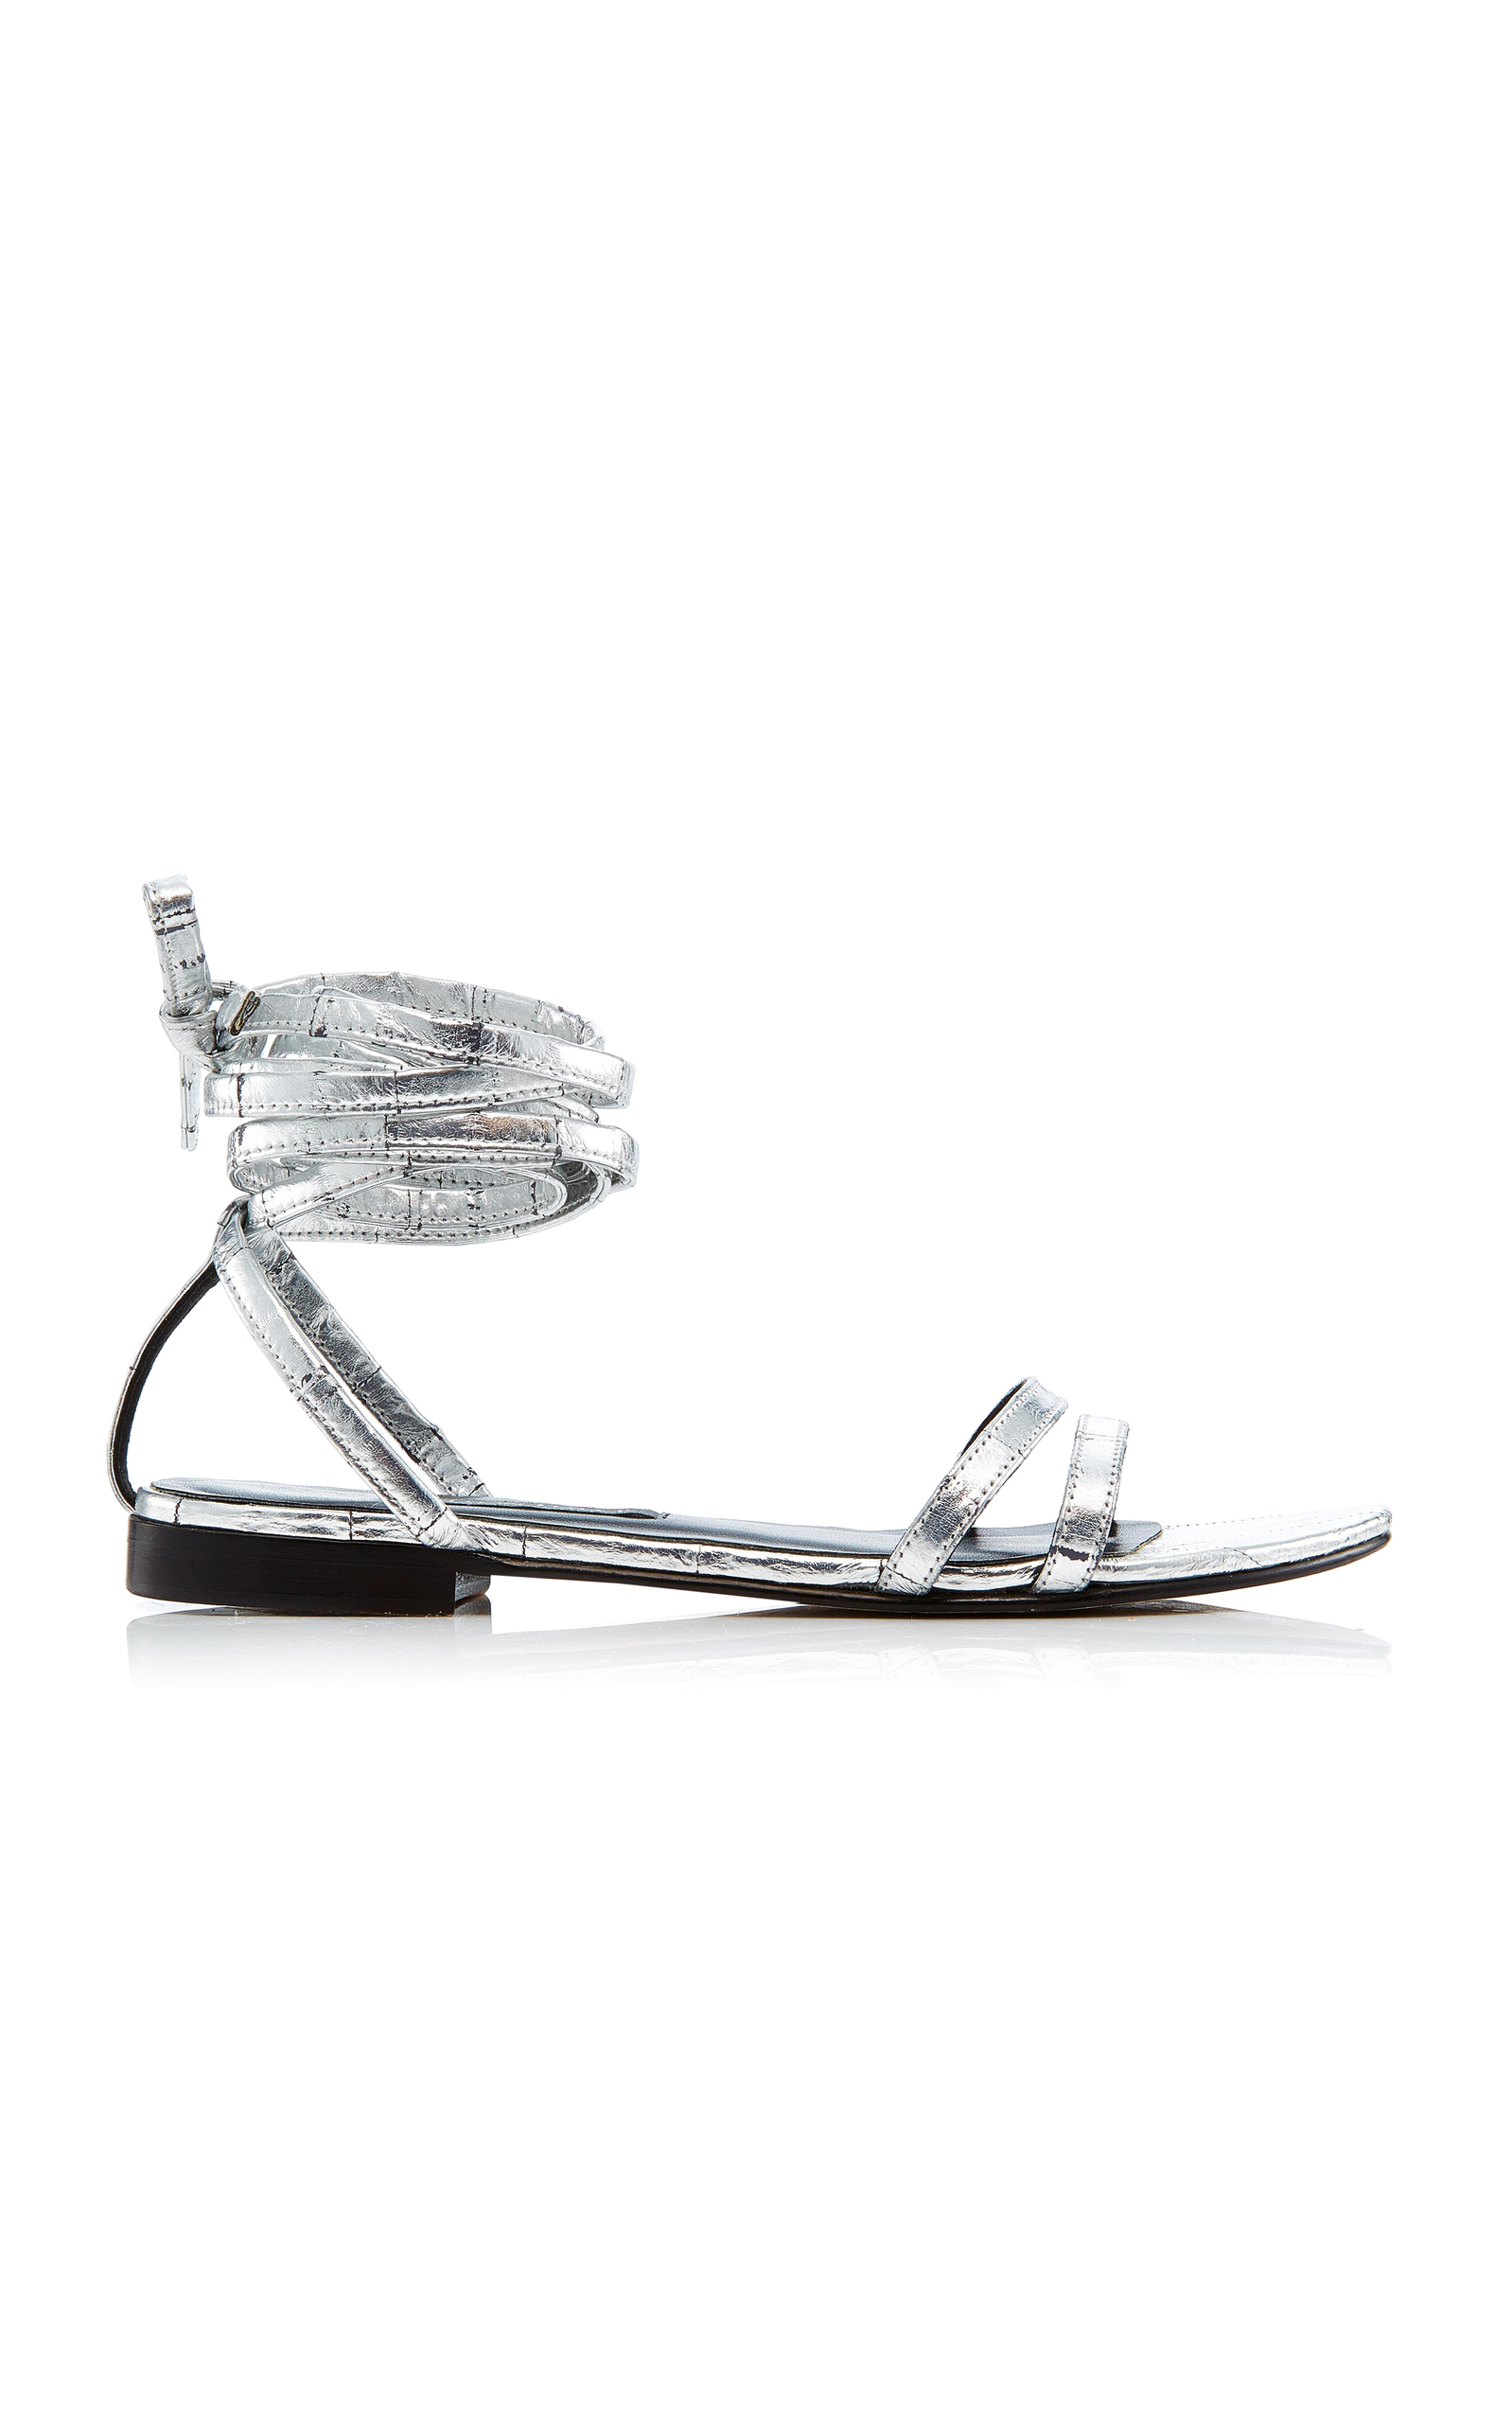 NEWBARK METALLIC SILVER ROSA EEL LEATHER SANDALS